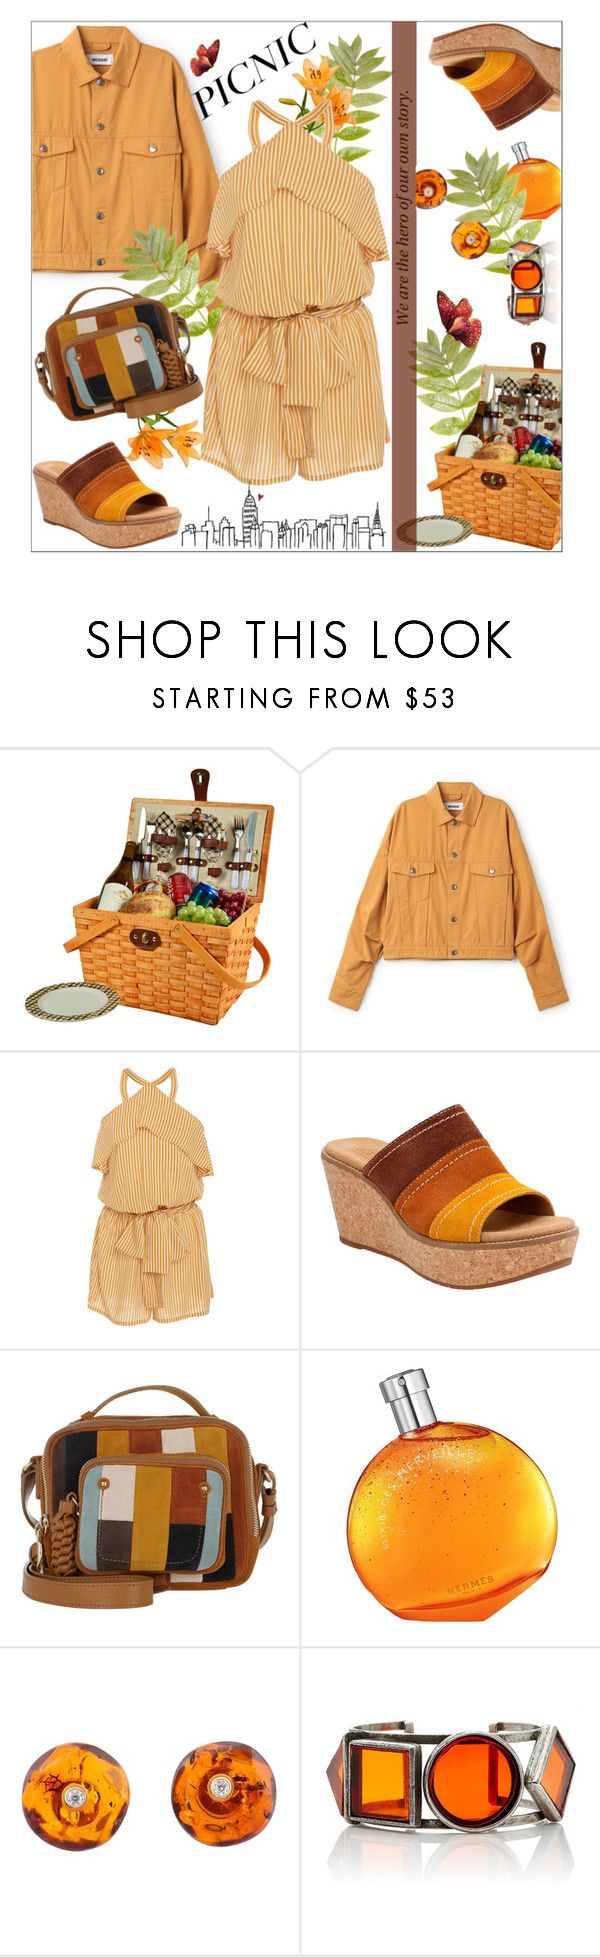 """Picnic Date"" by dani-elan ❤ liked on Polyvore featuring Picnic at Ascot, Faithfull, Clarks, See by Chloé, Hermès and Be-Jewelled"